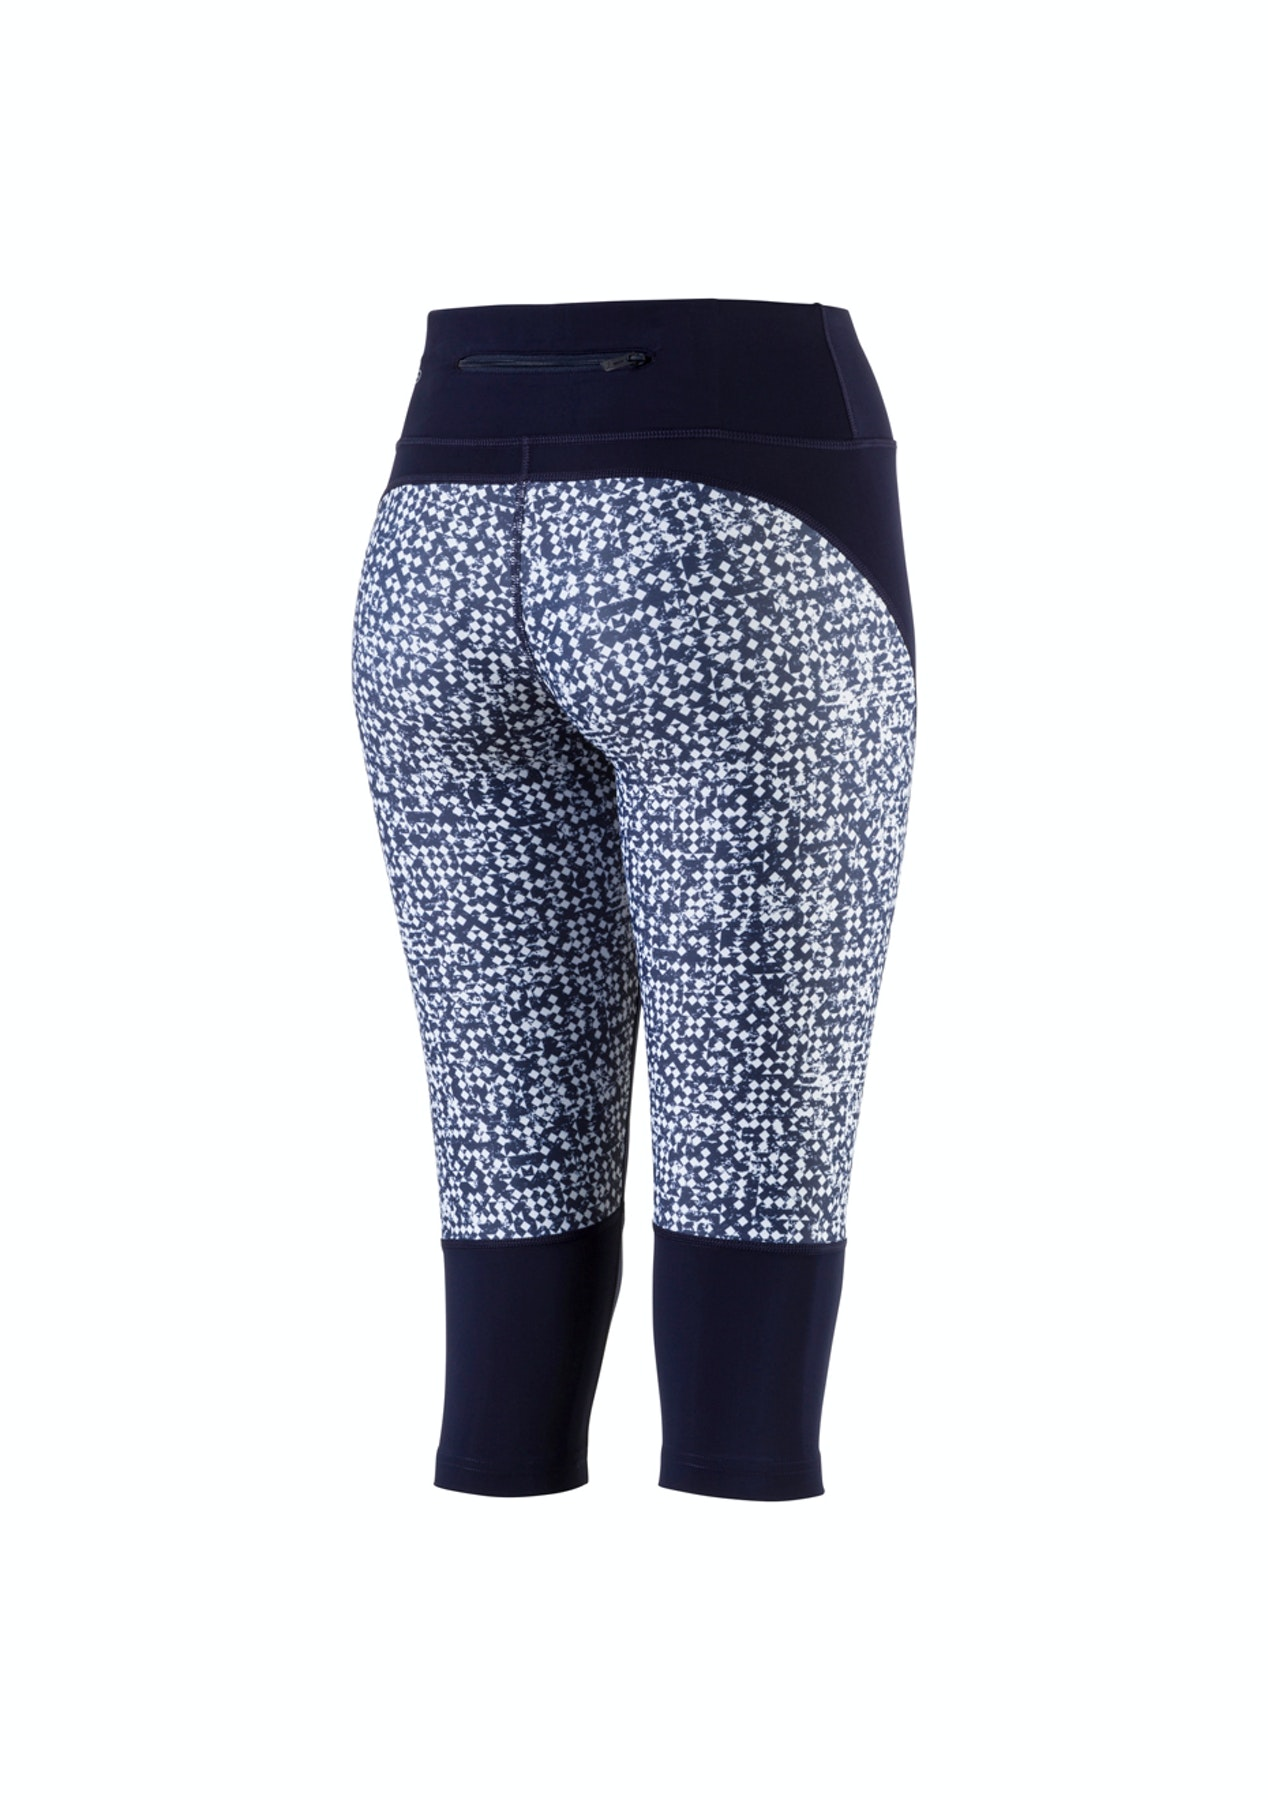 f141d08c0ce3e Puma Womens - Culture Surf 3/4 Tight - Peacoat - Puma Restock - Onceit